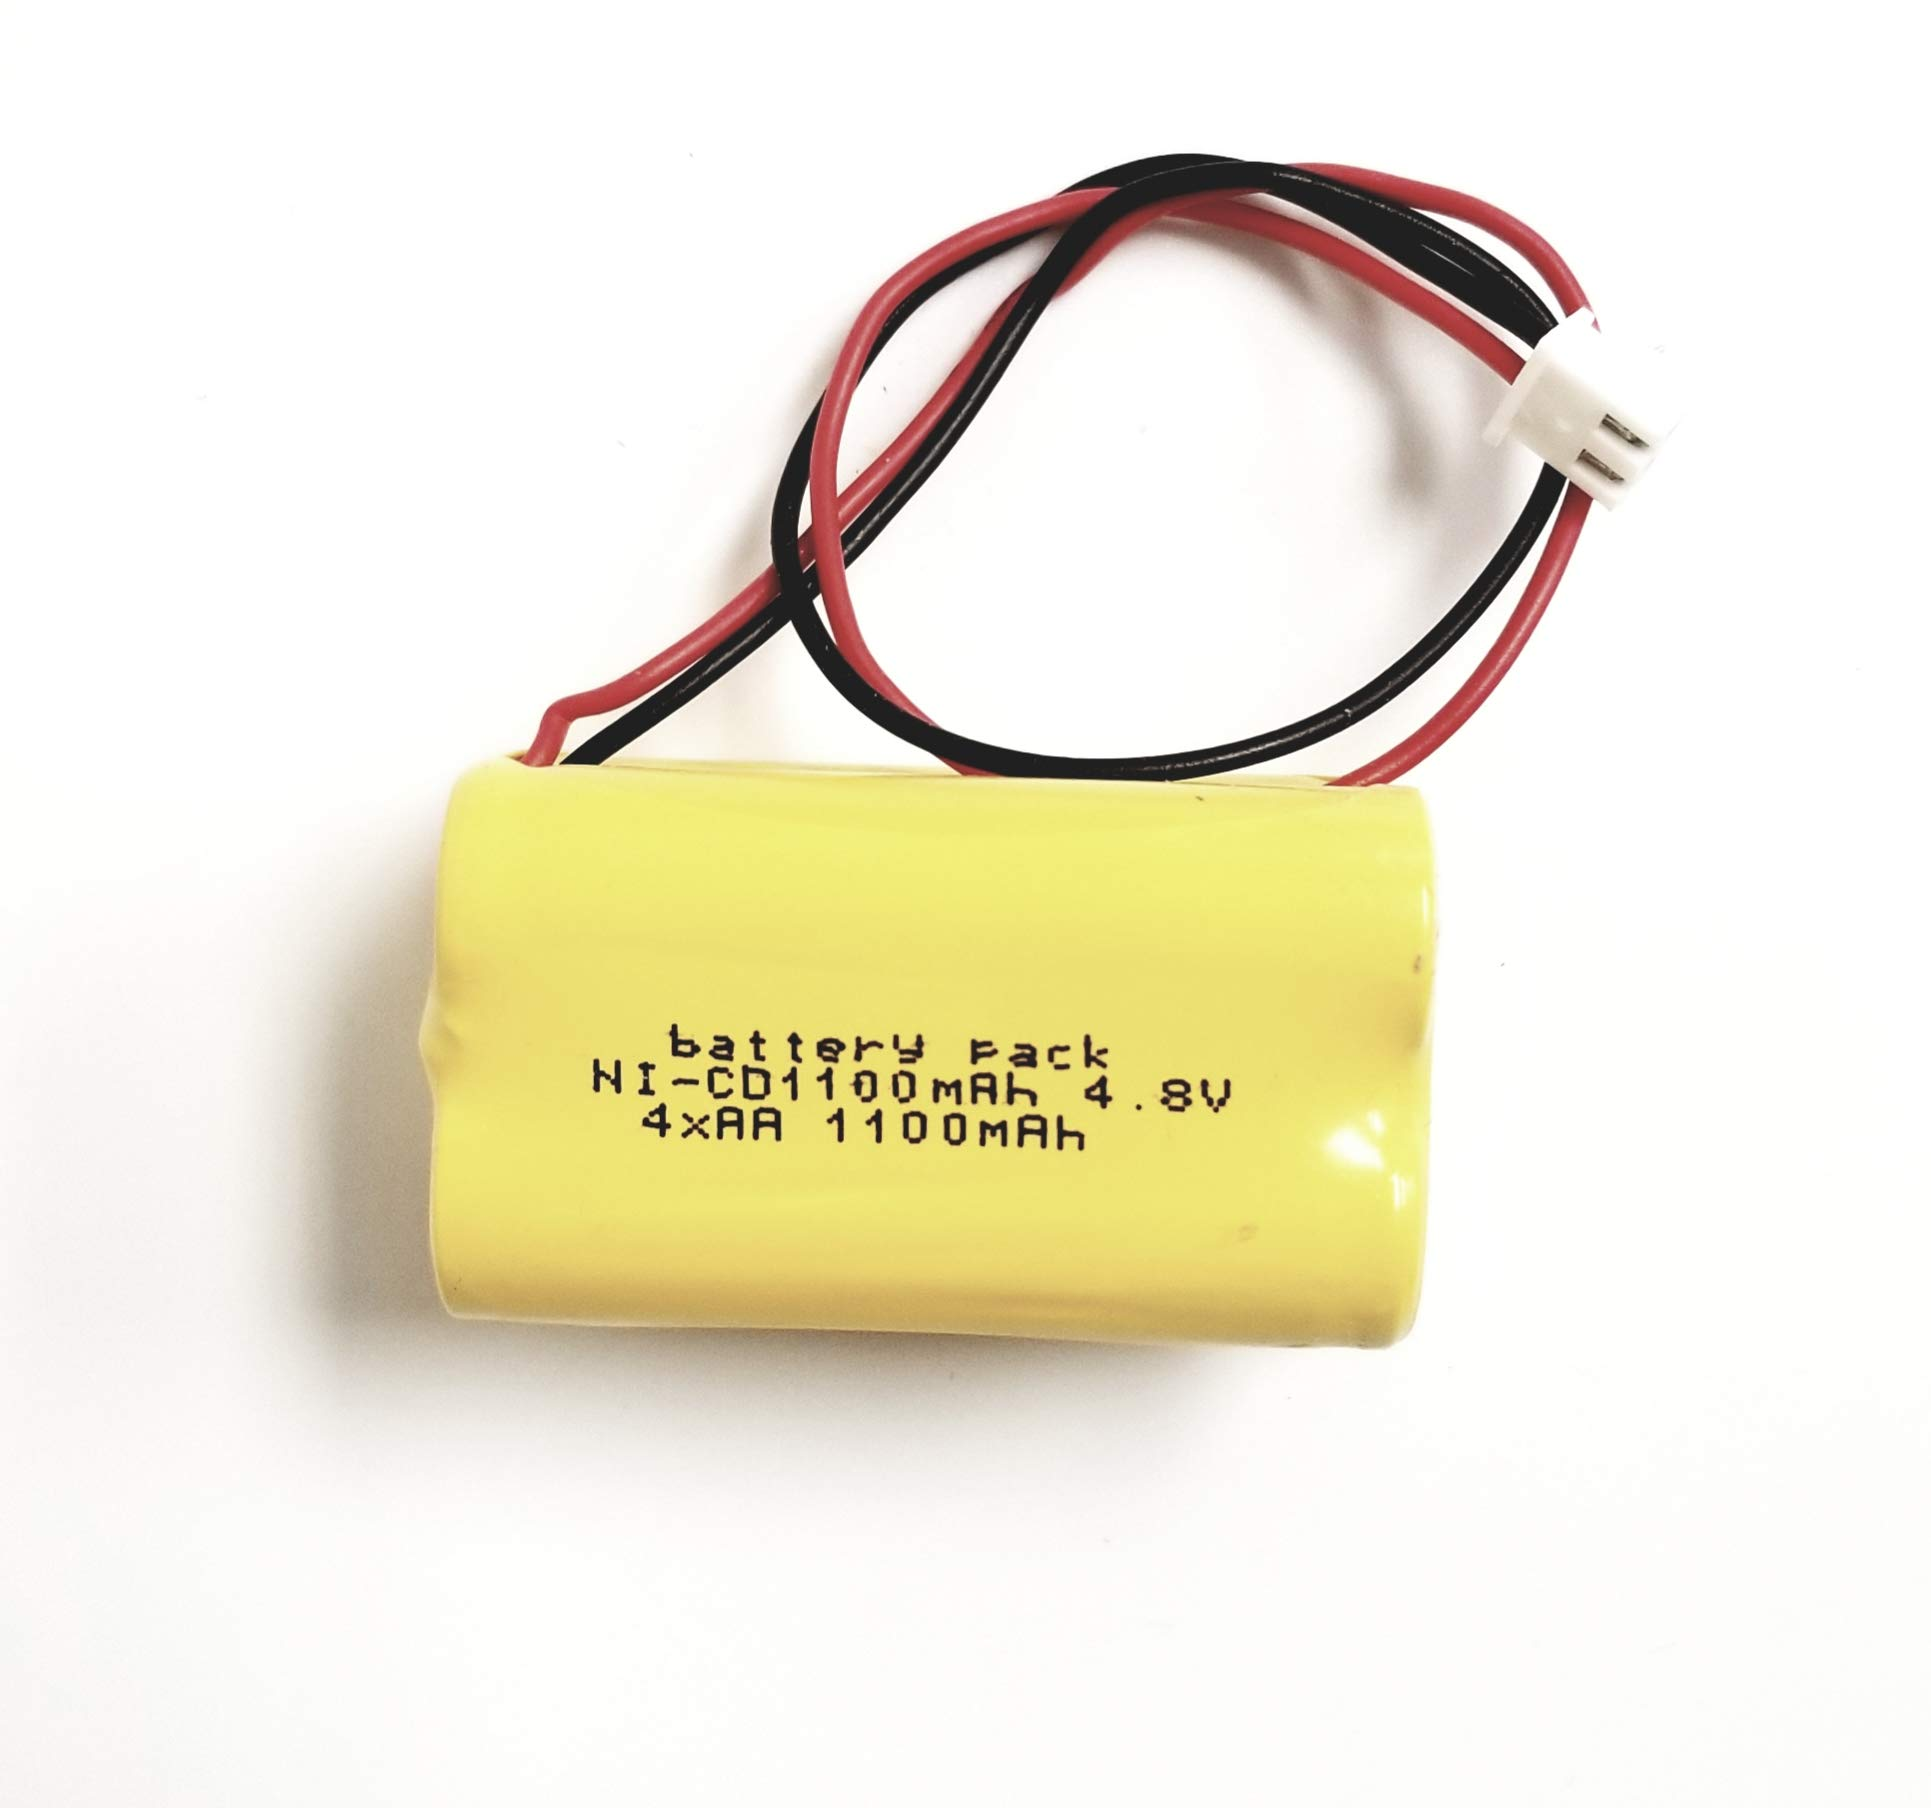 Emergency Exit Sign Battery Light Fixture Battery AA NiCAD 4.8v 1100mAh - Compatible with BAA48R Emerlight Daybright BL93NC487 At-Lite BL93NC484 4-TD-800AA-HP . By Shira TM